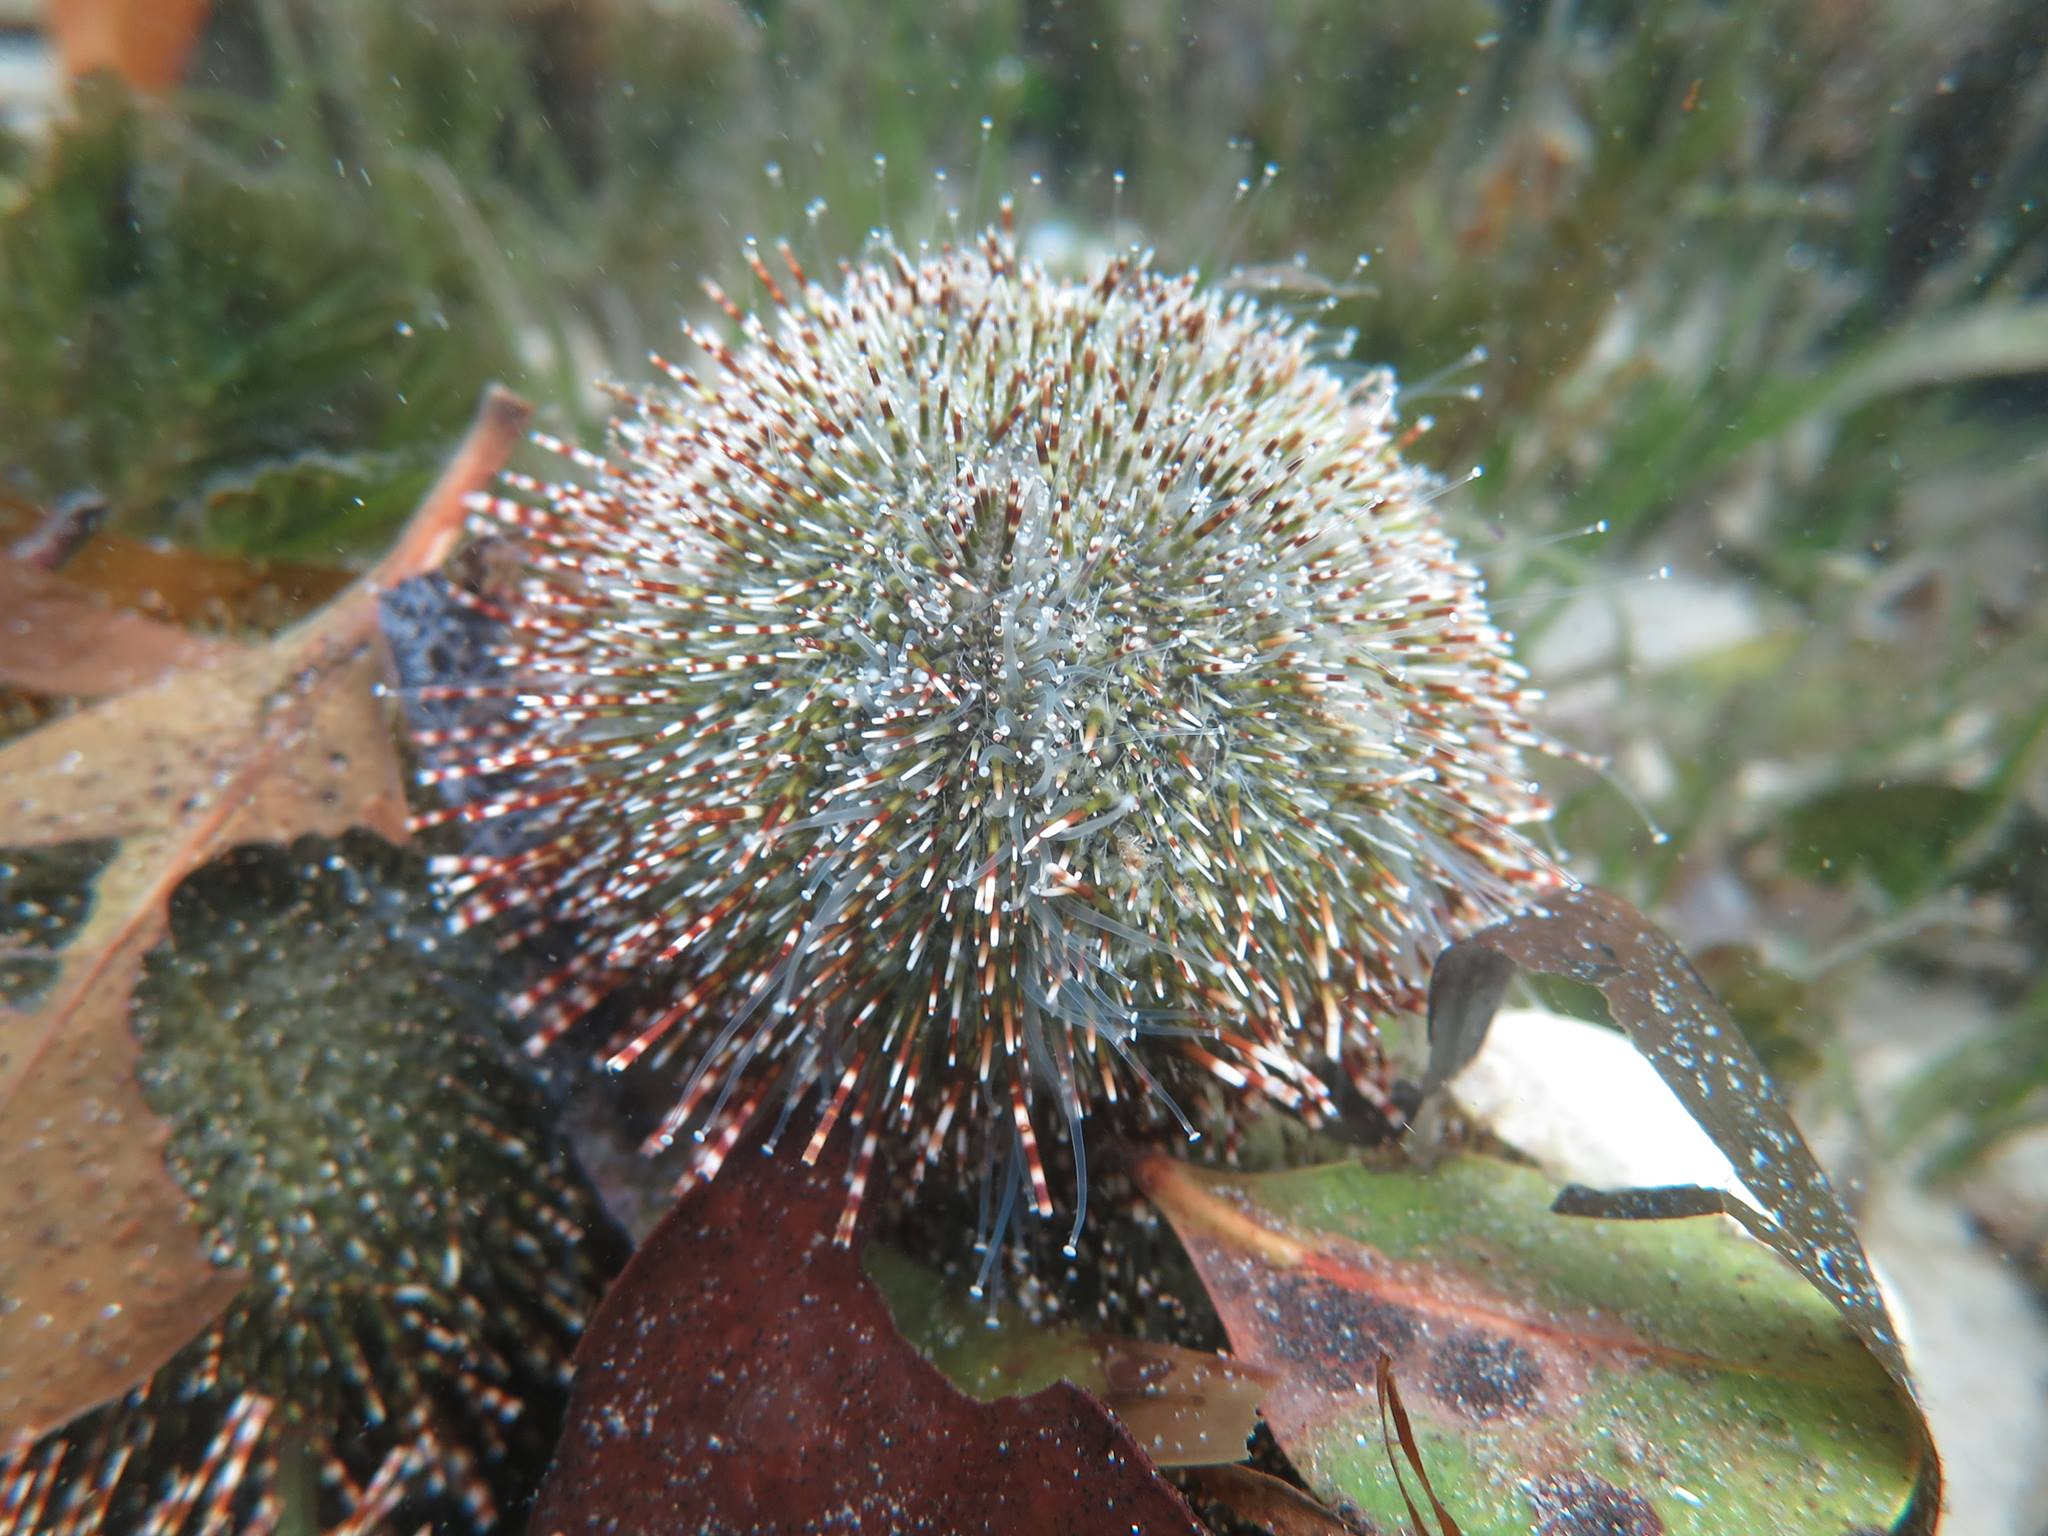 Green Sea Urchin